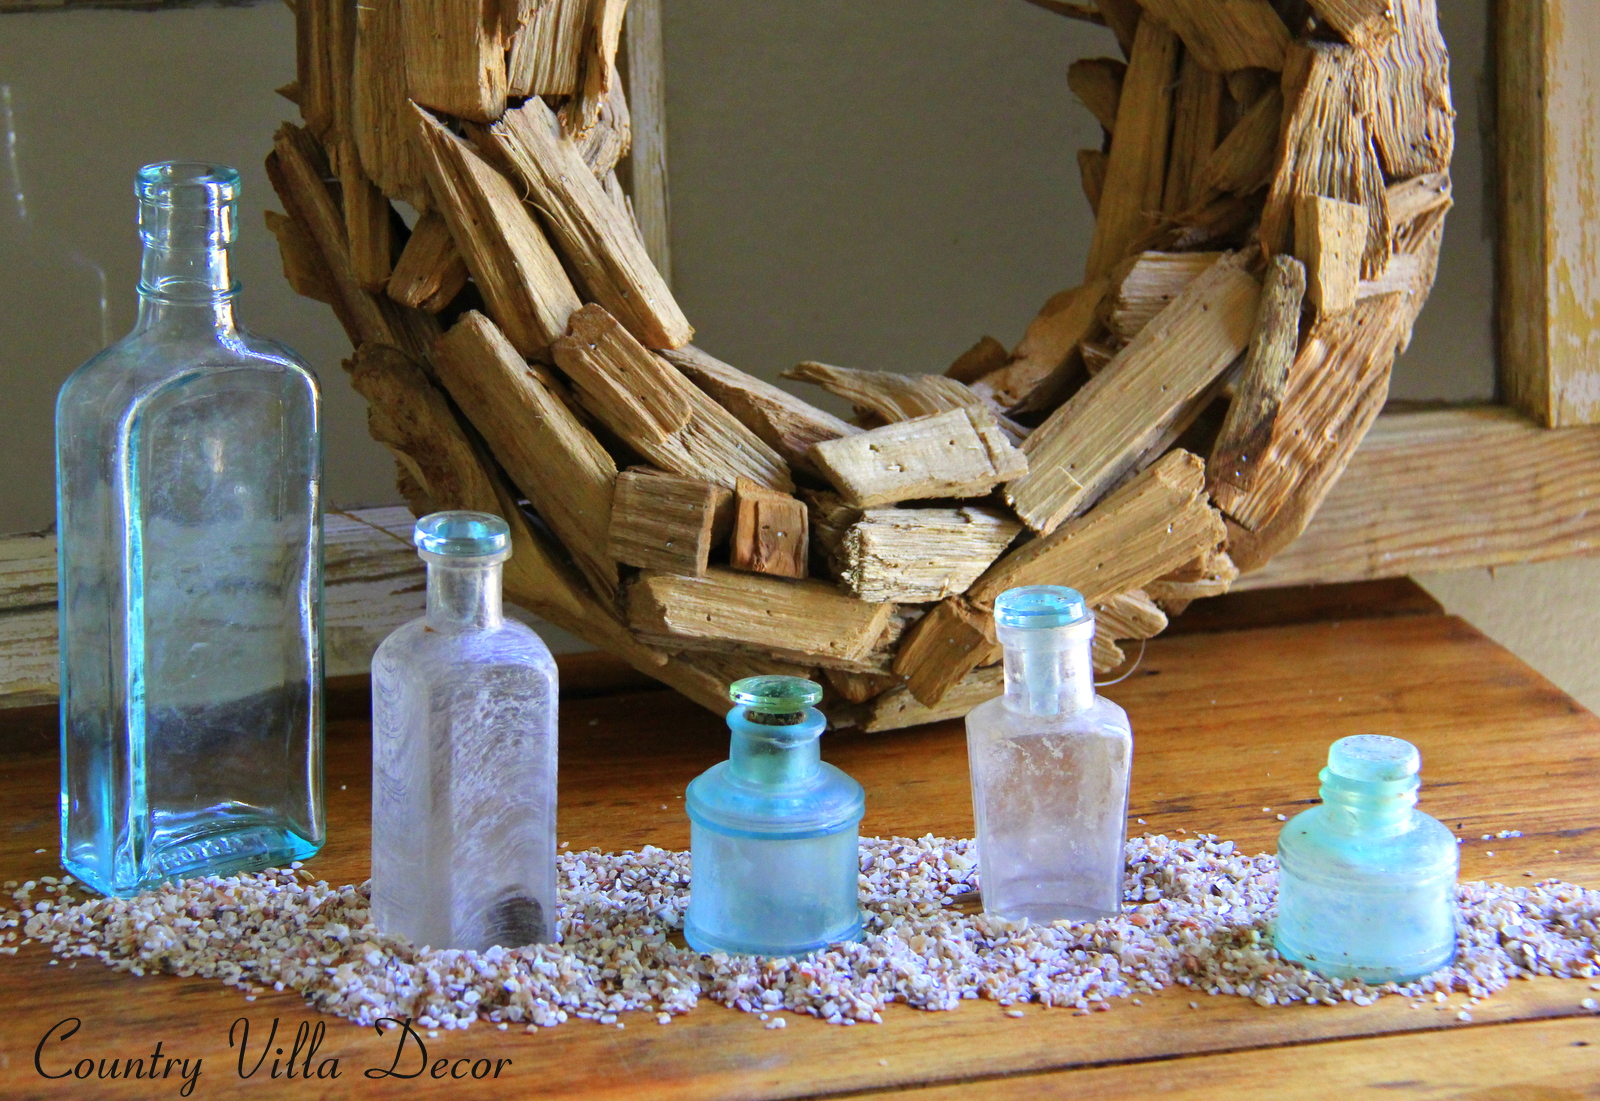 COUNTRY VILLA DECOR: Beach Cottage Decor Ideas.....Part 2